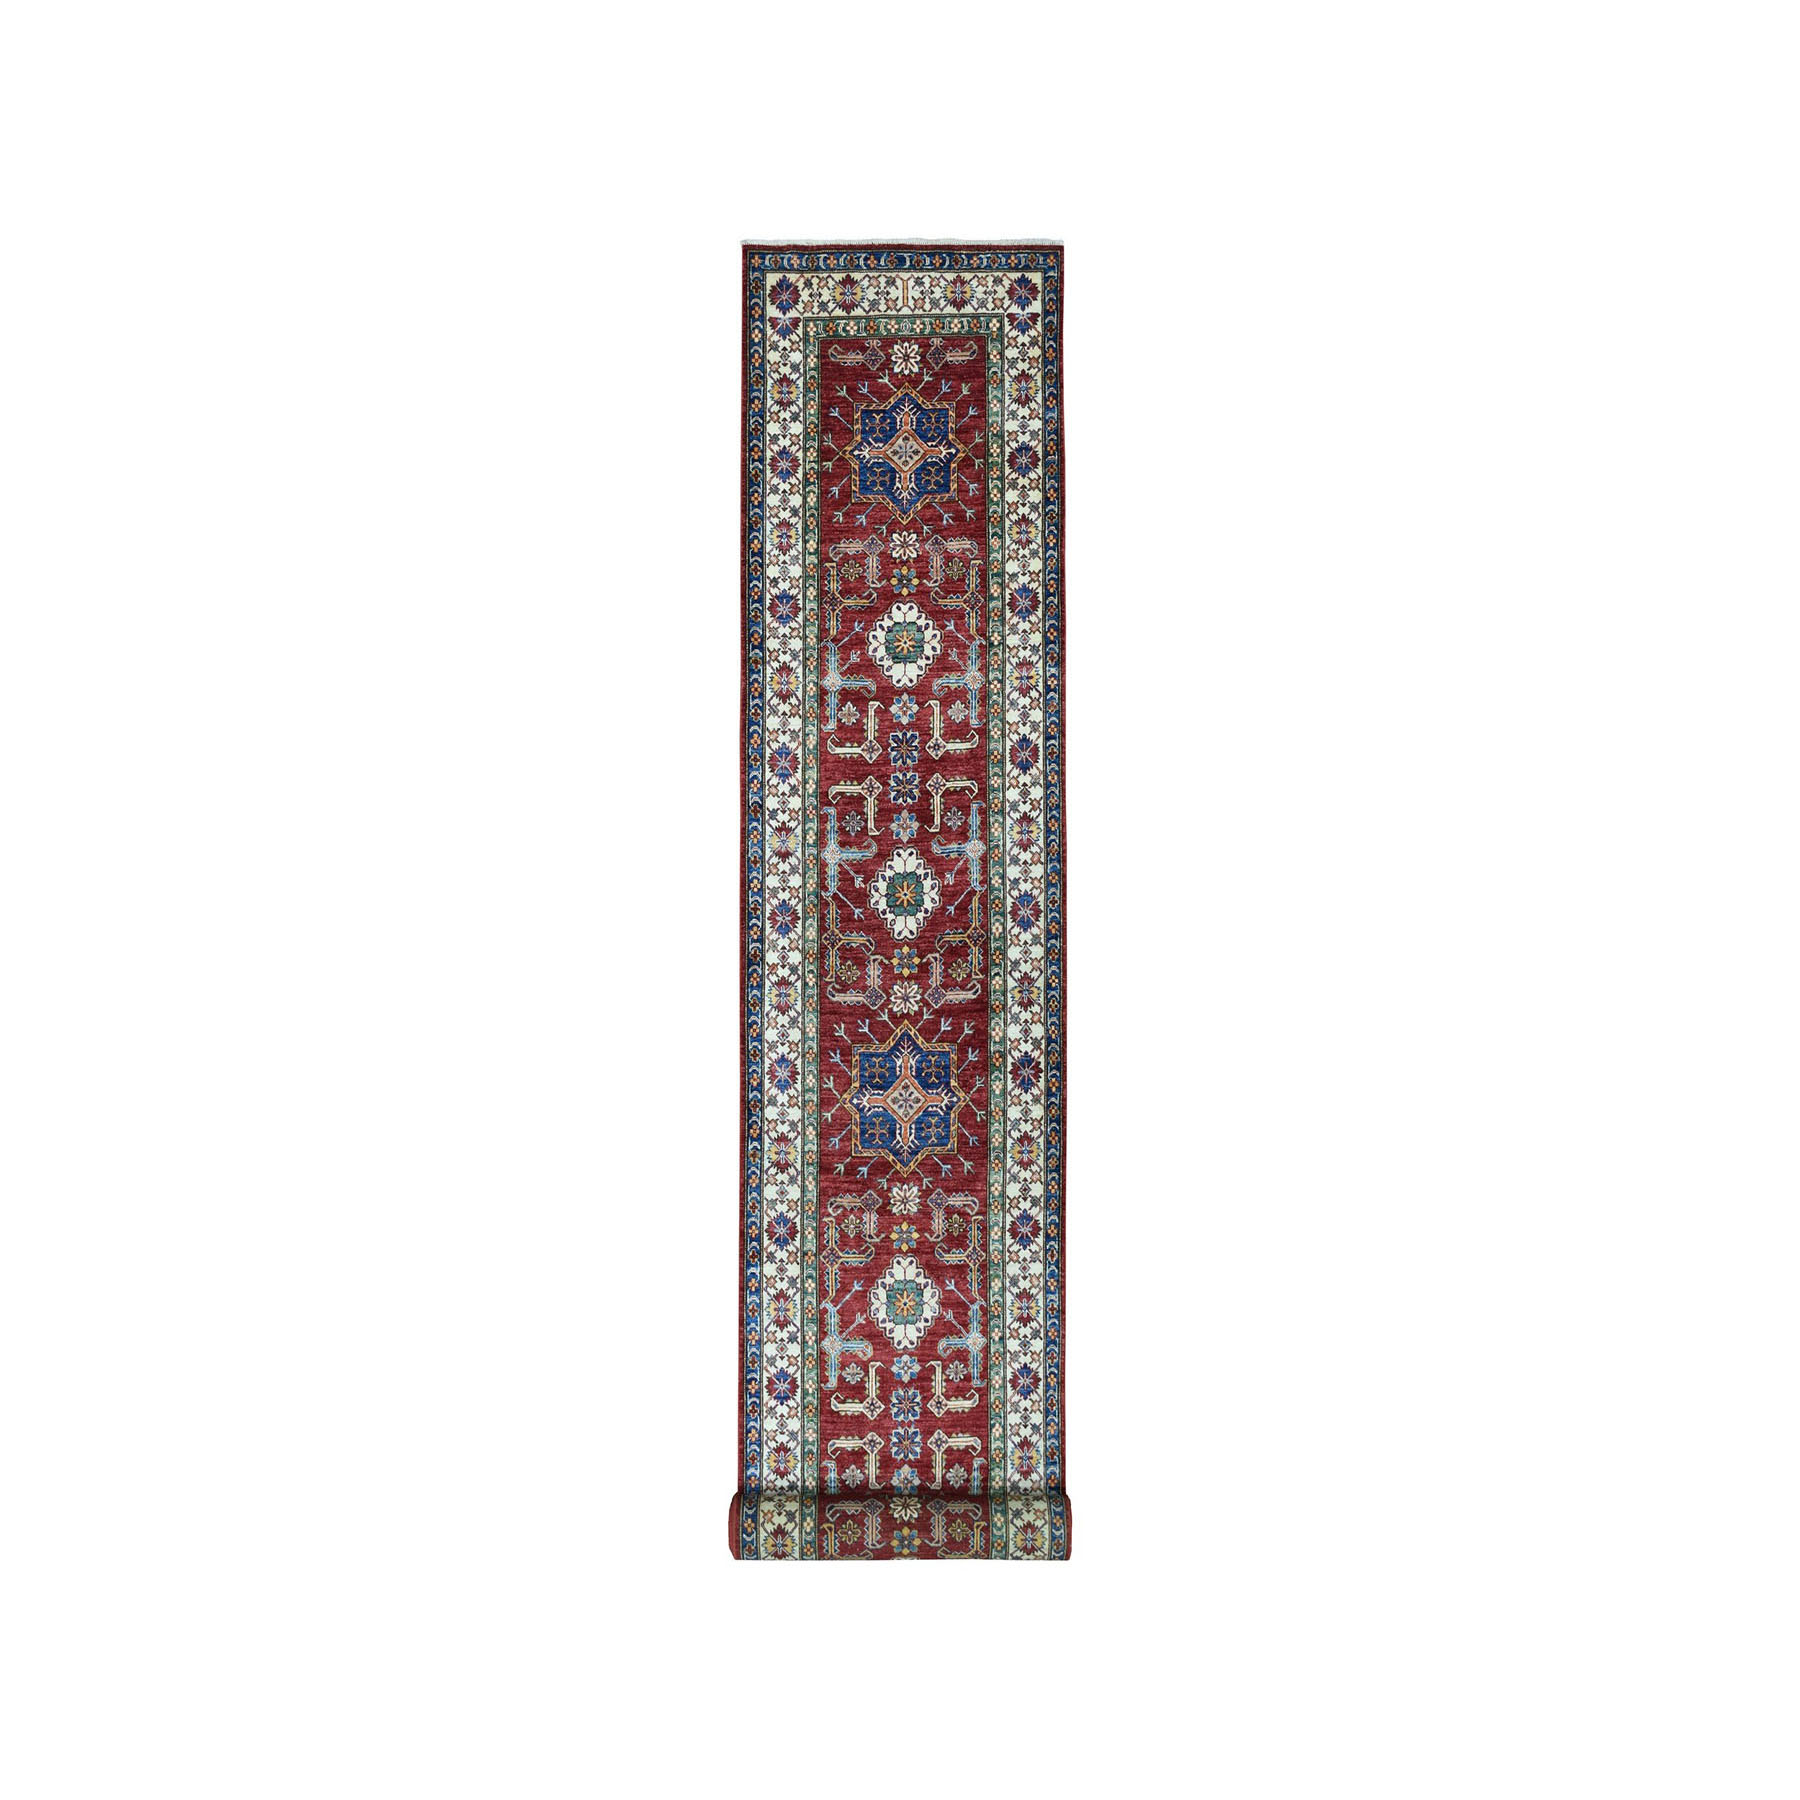 "3'4""x19'3"" Red Super Kazak Geometric Design Hand-Knotted XL Runner Oriental Rug"